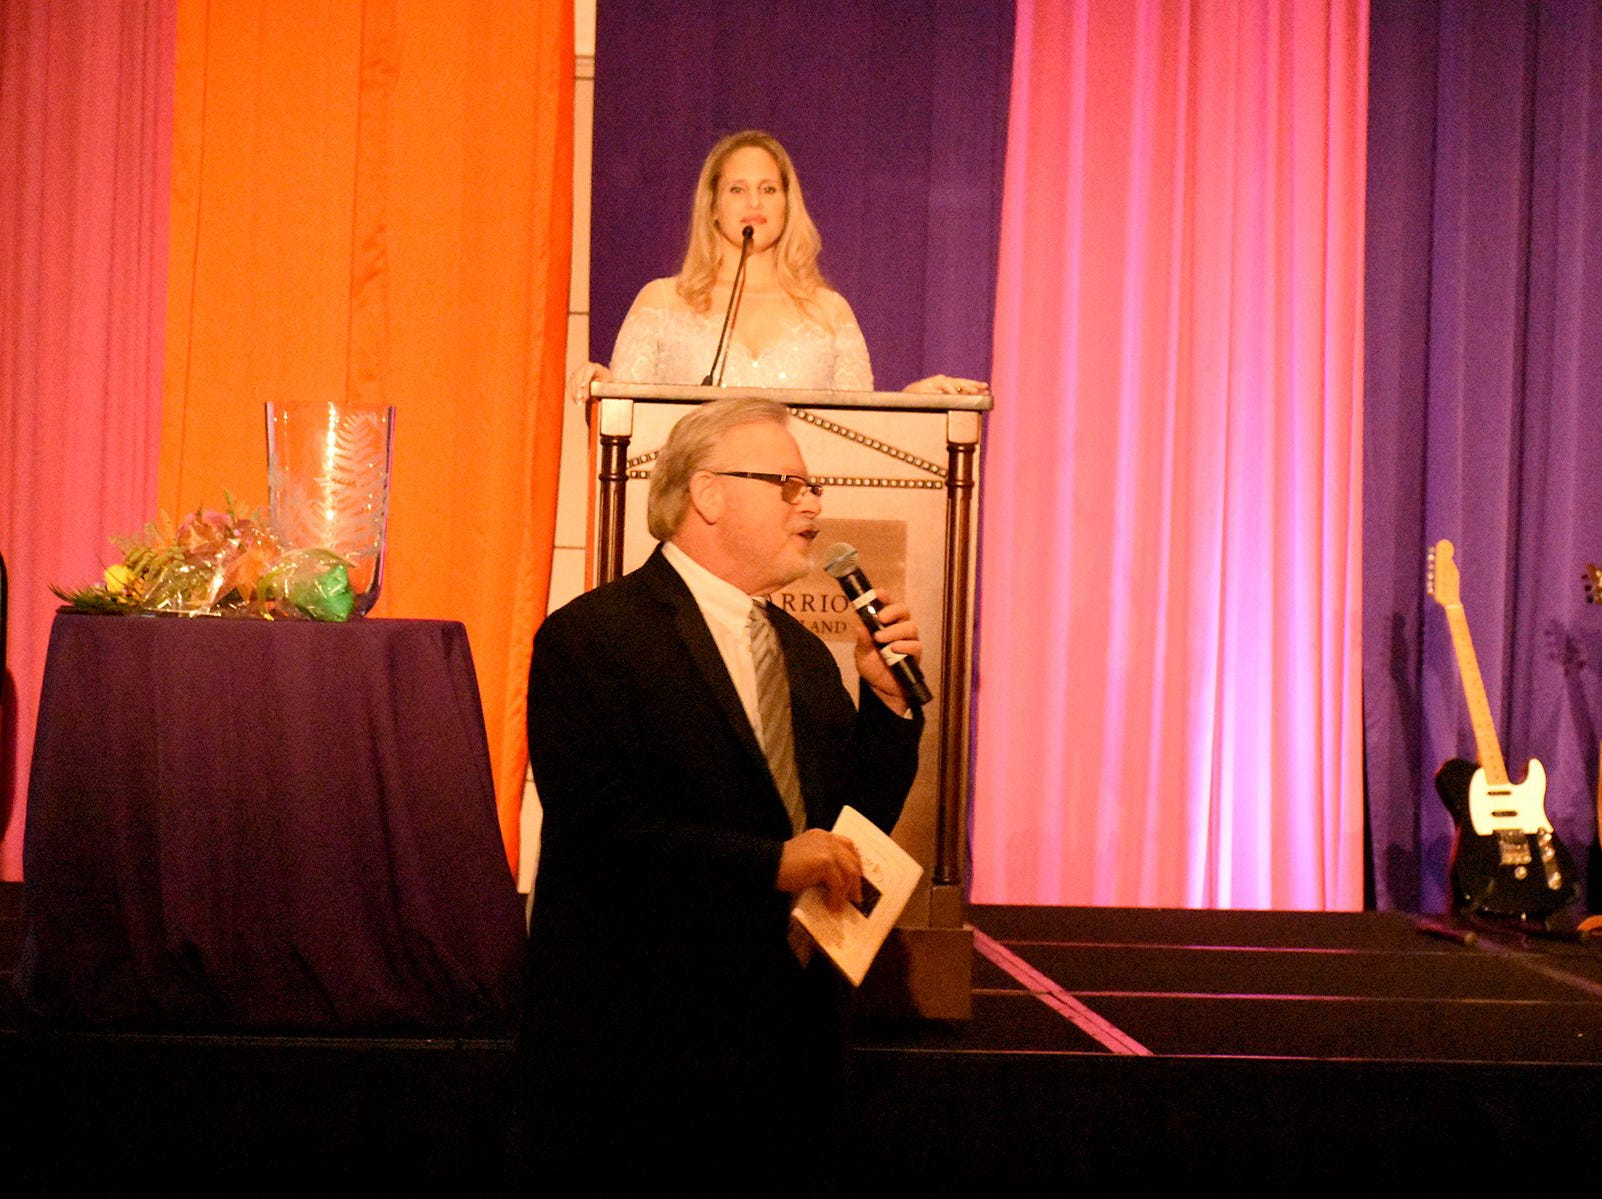 Auctioneer Rick Gallo conducts the live auction. The Marco Island unit of the American Cancer Society held the Imagination Ball Friday evening at the JW Marriott hotel, raising funds to continue the fight against cancer.